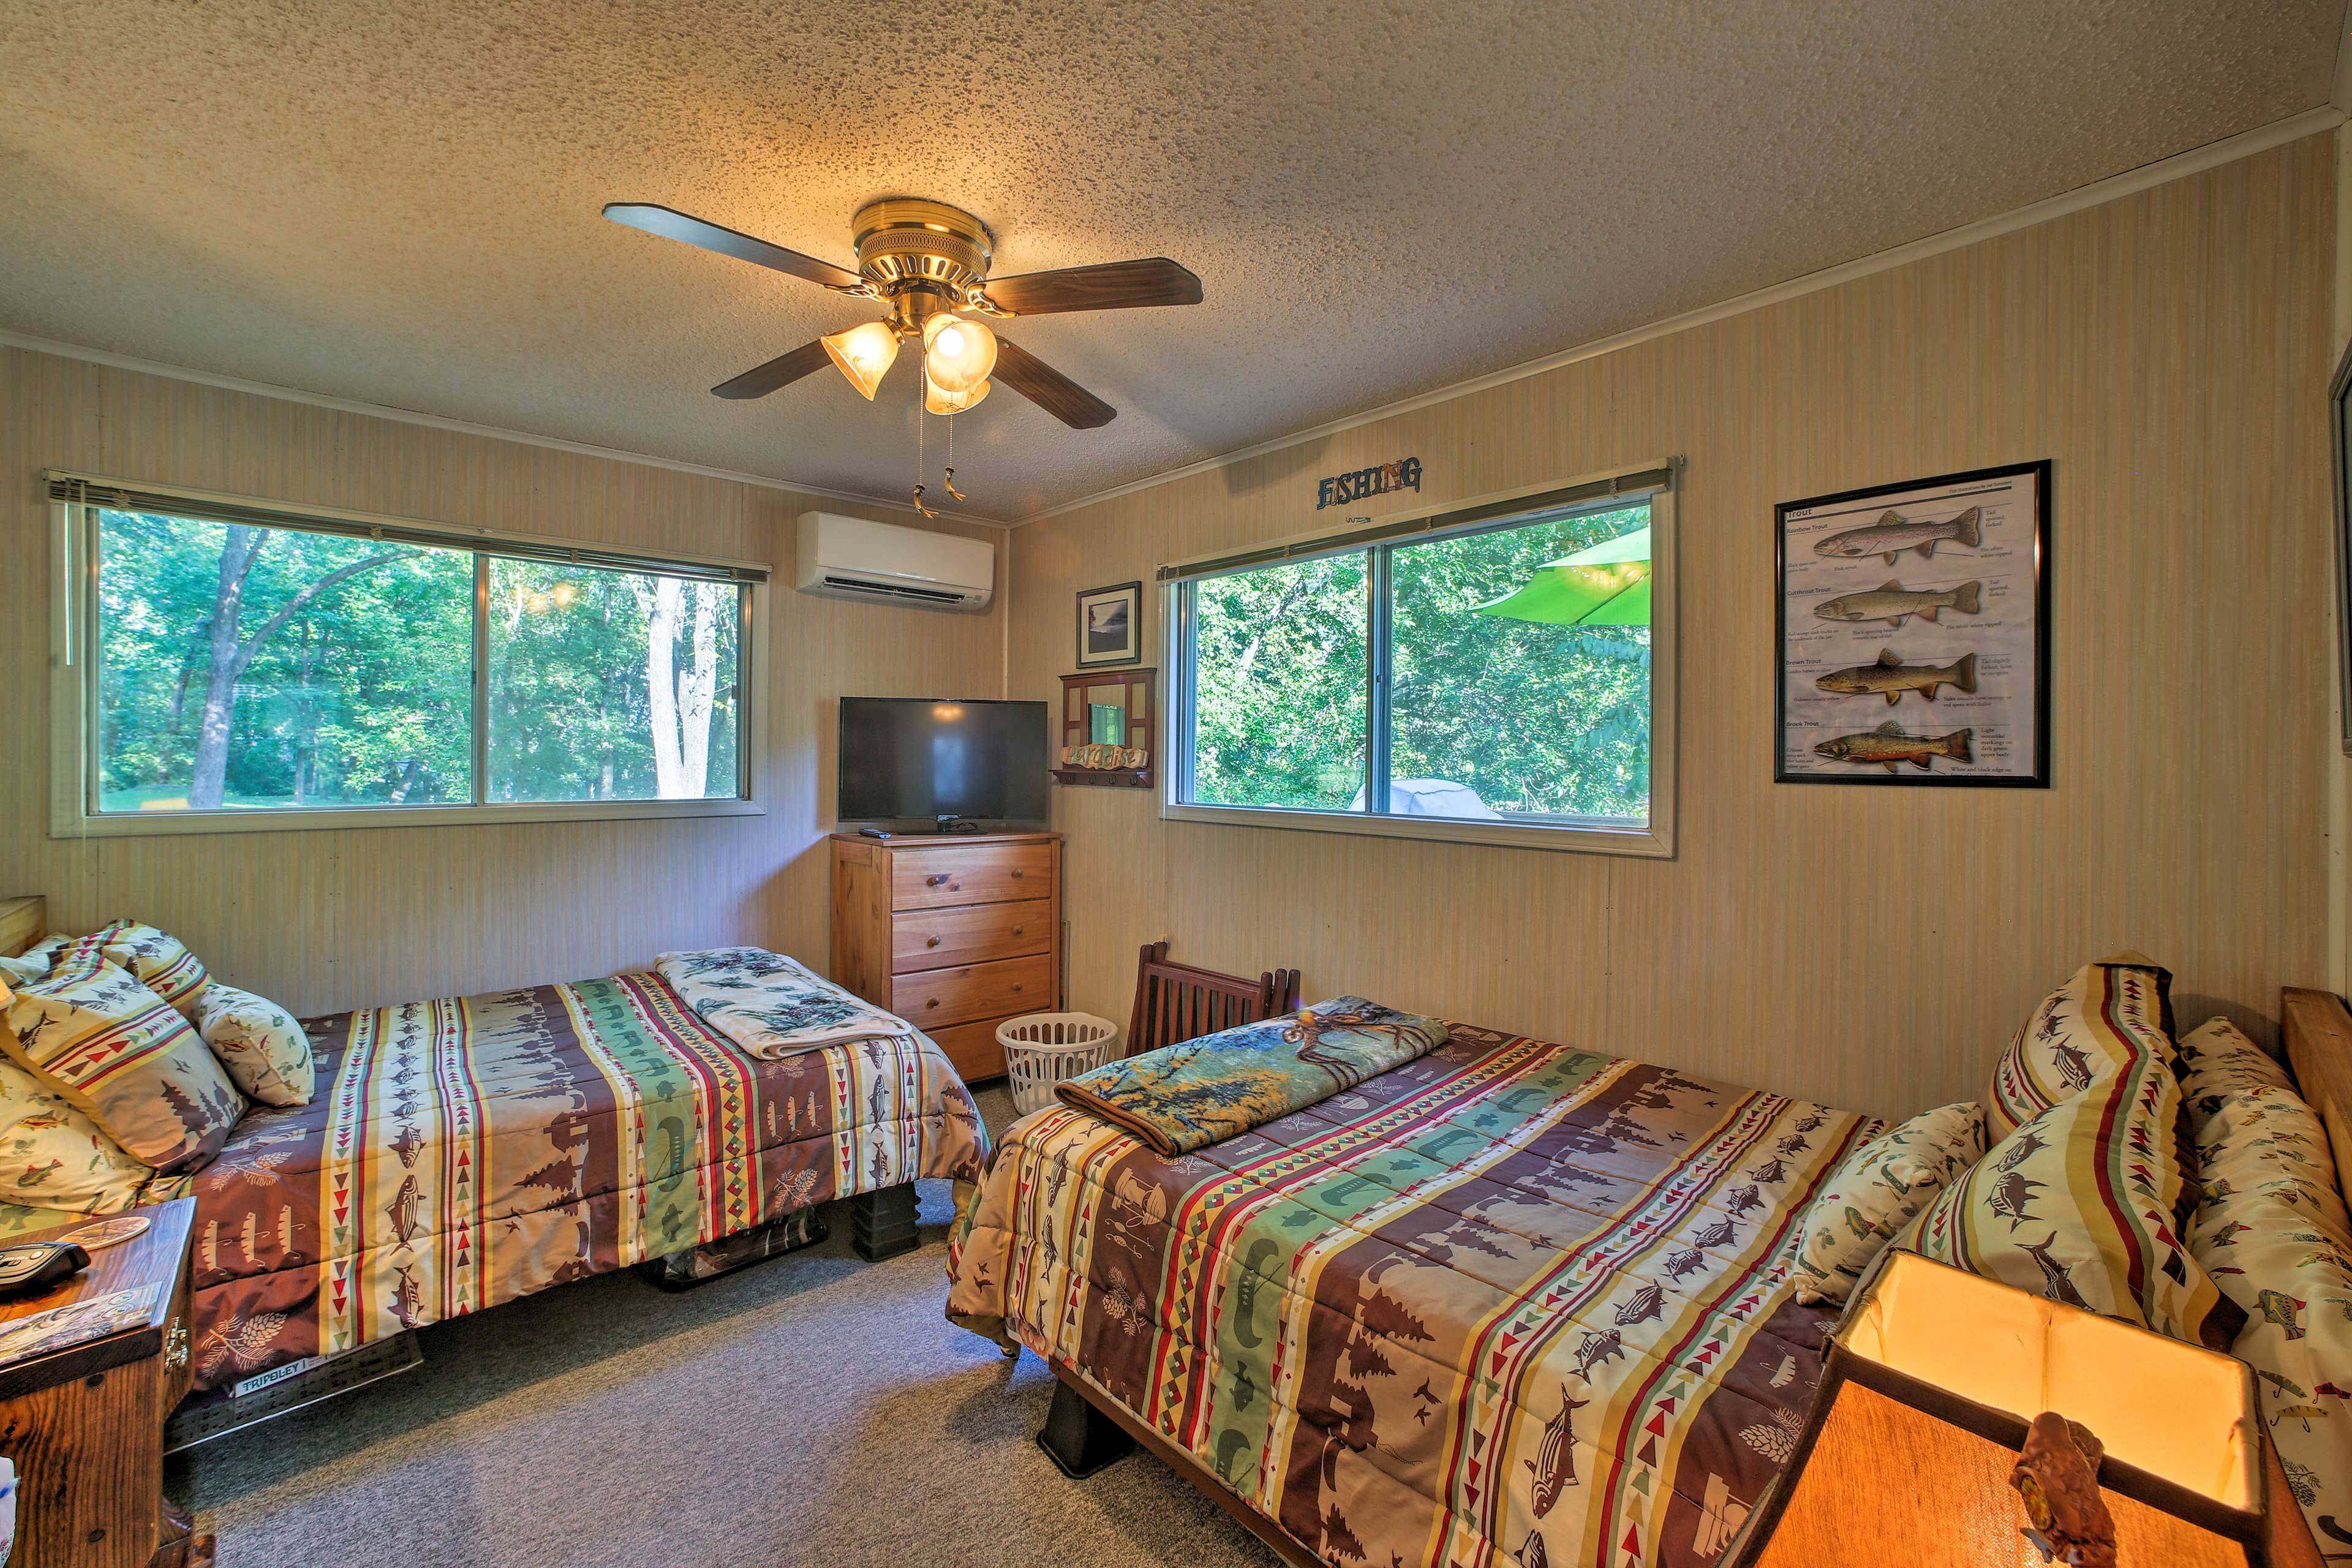 The second bedroom includes 2 full-sized beds.